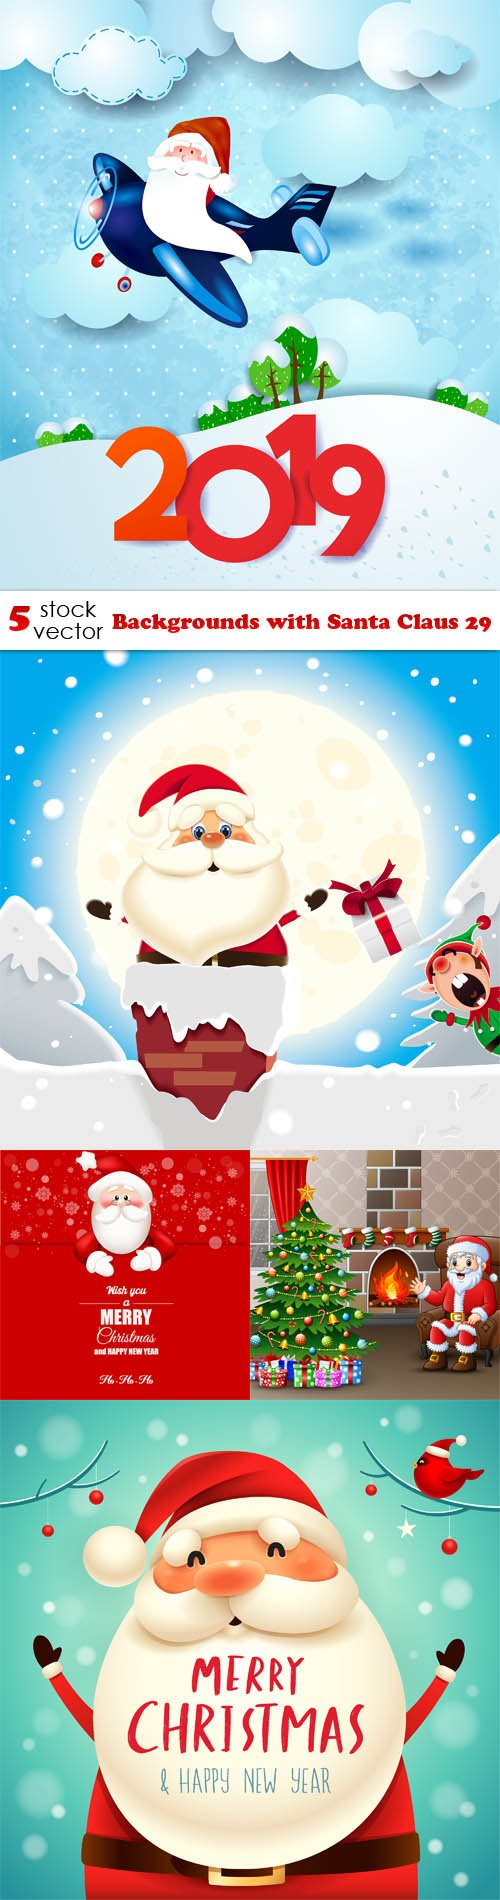 Vectors - Backgrounds with Santa Claus 29